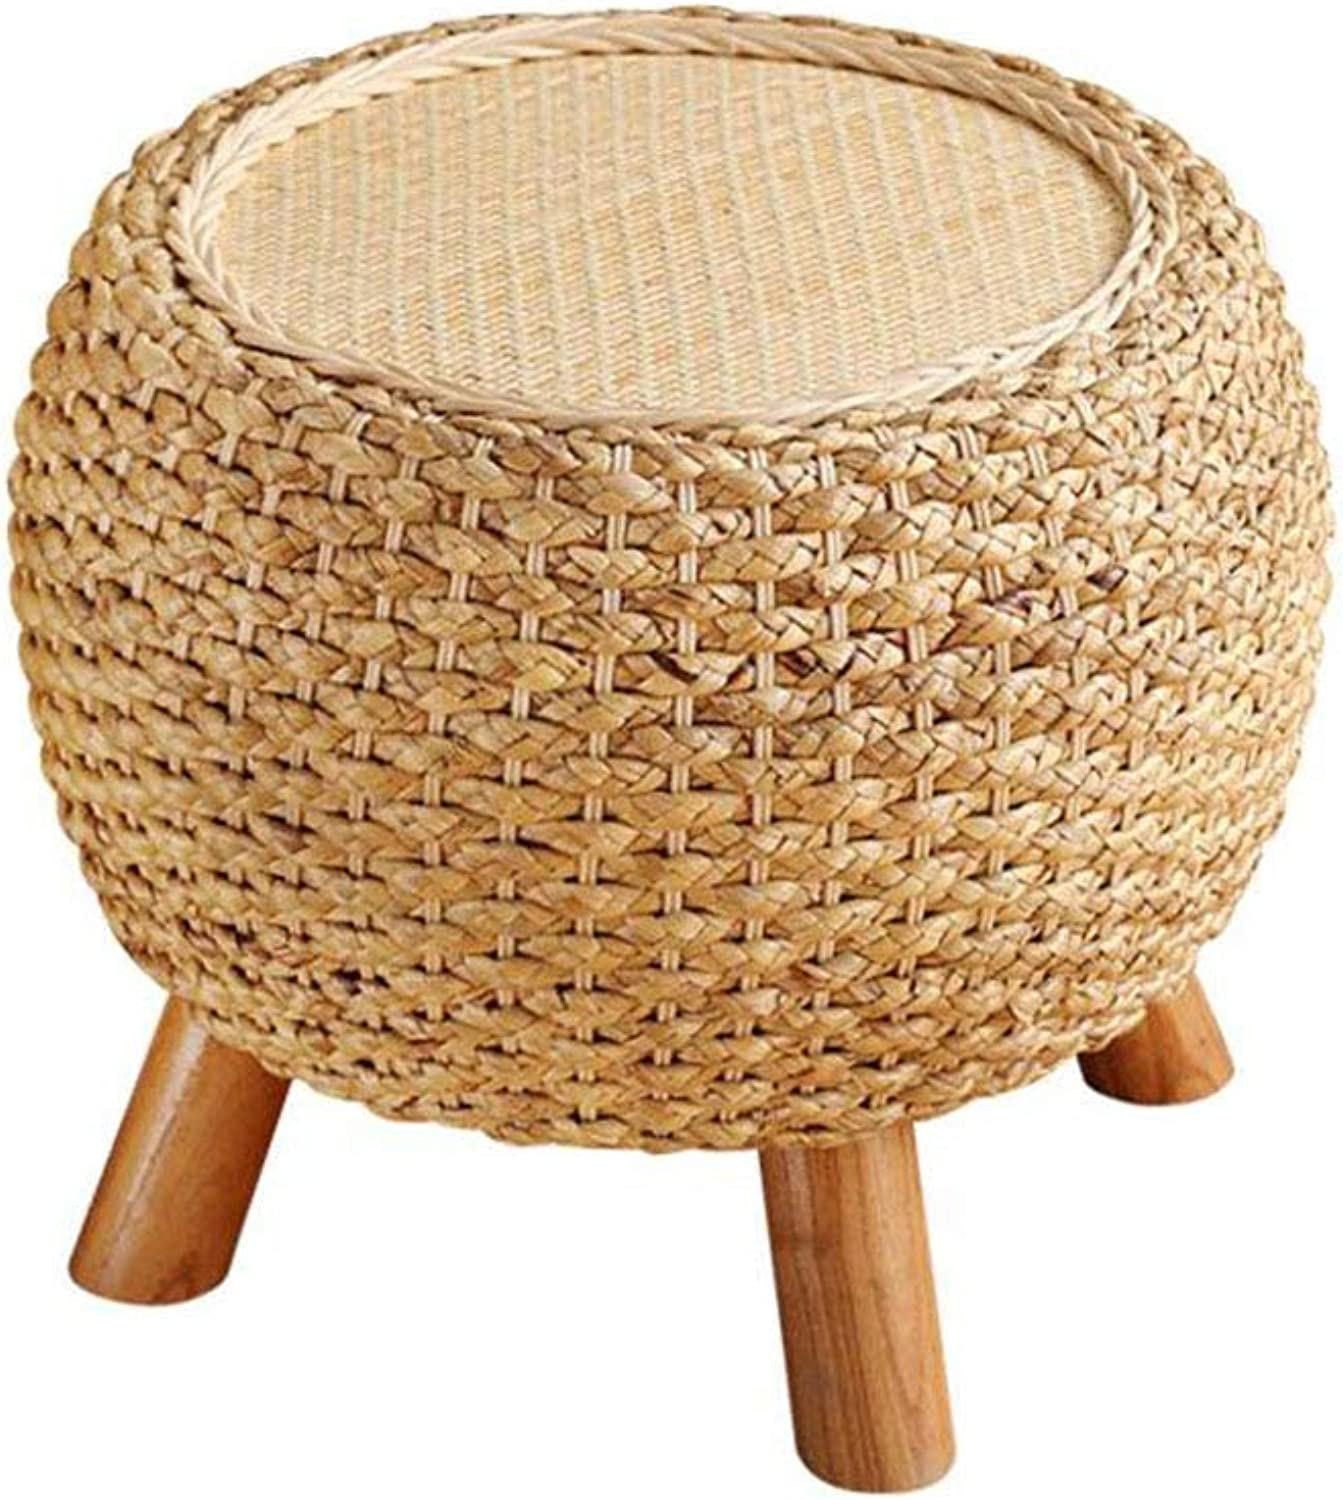 HQCC Home Fashion Rattan Stool Solid Wood shoes Bench